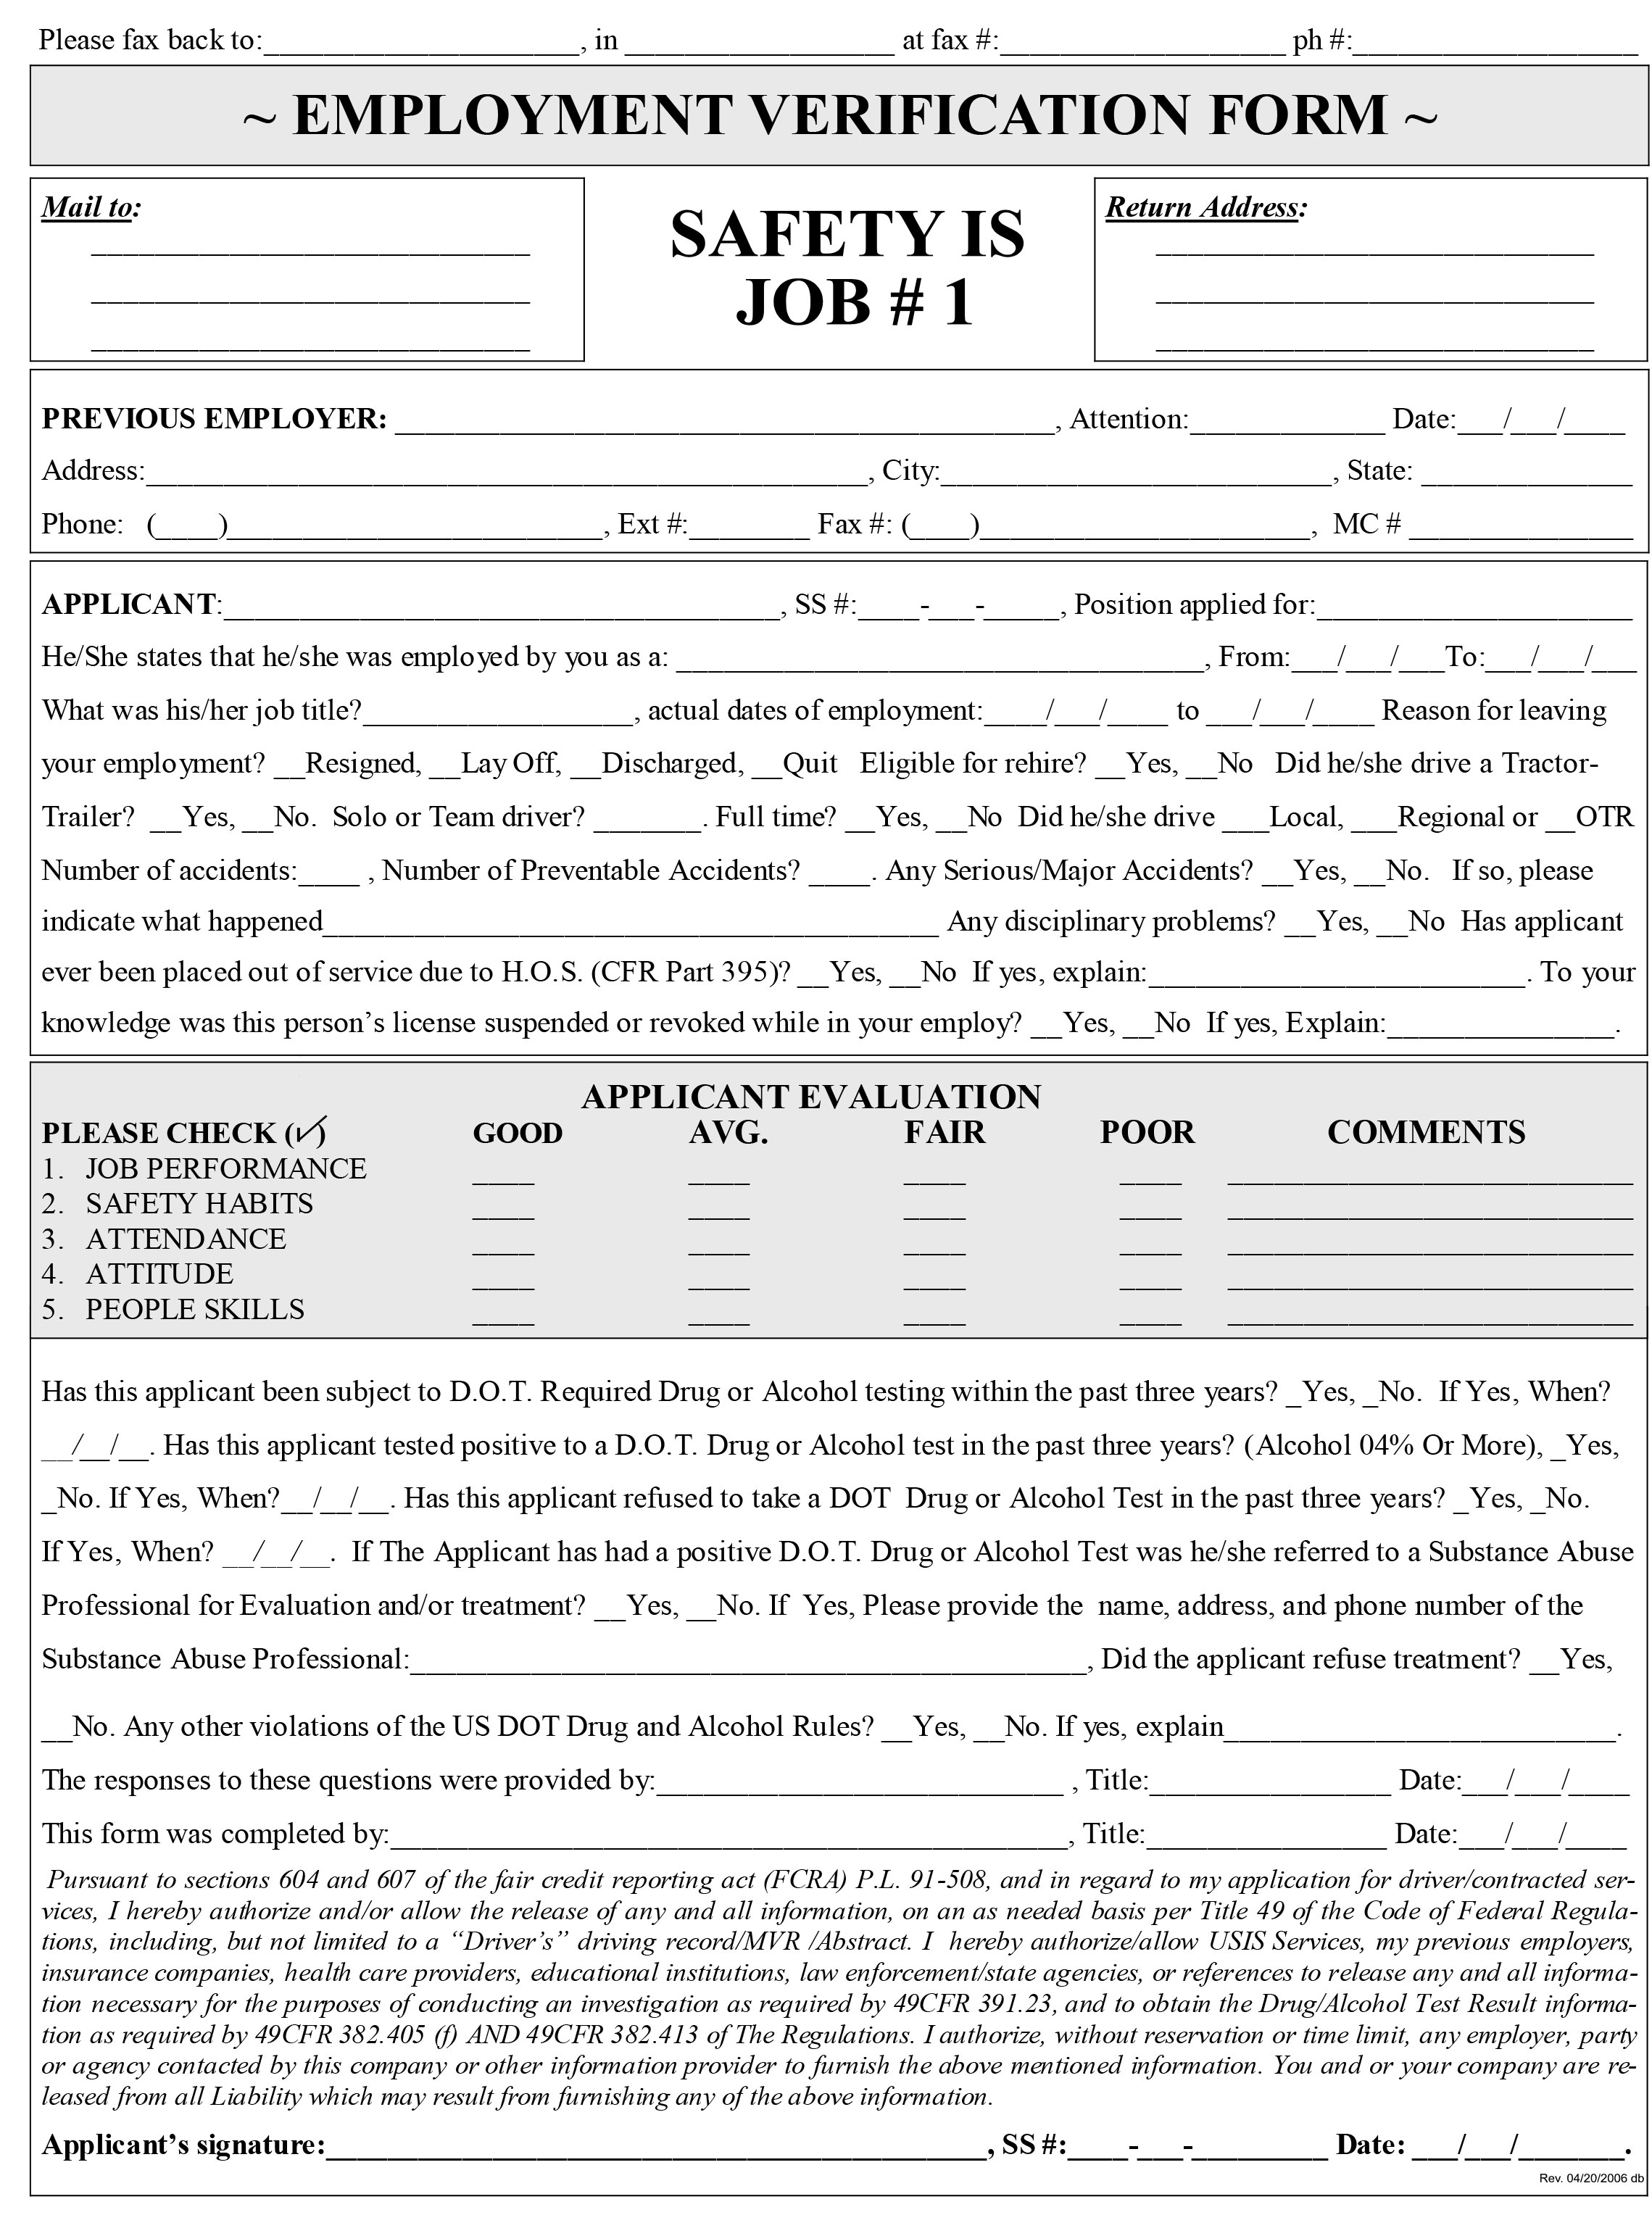 DriversApplicationPrintable7 – Prior Employment Verification Form